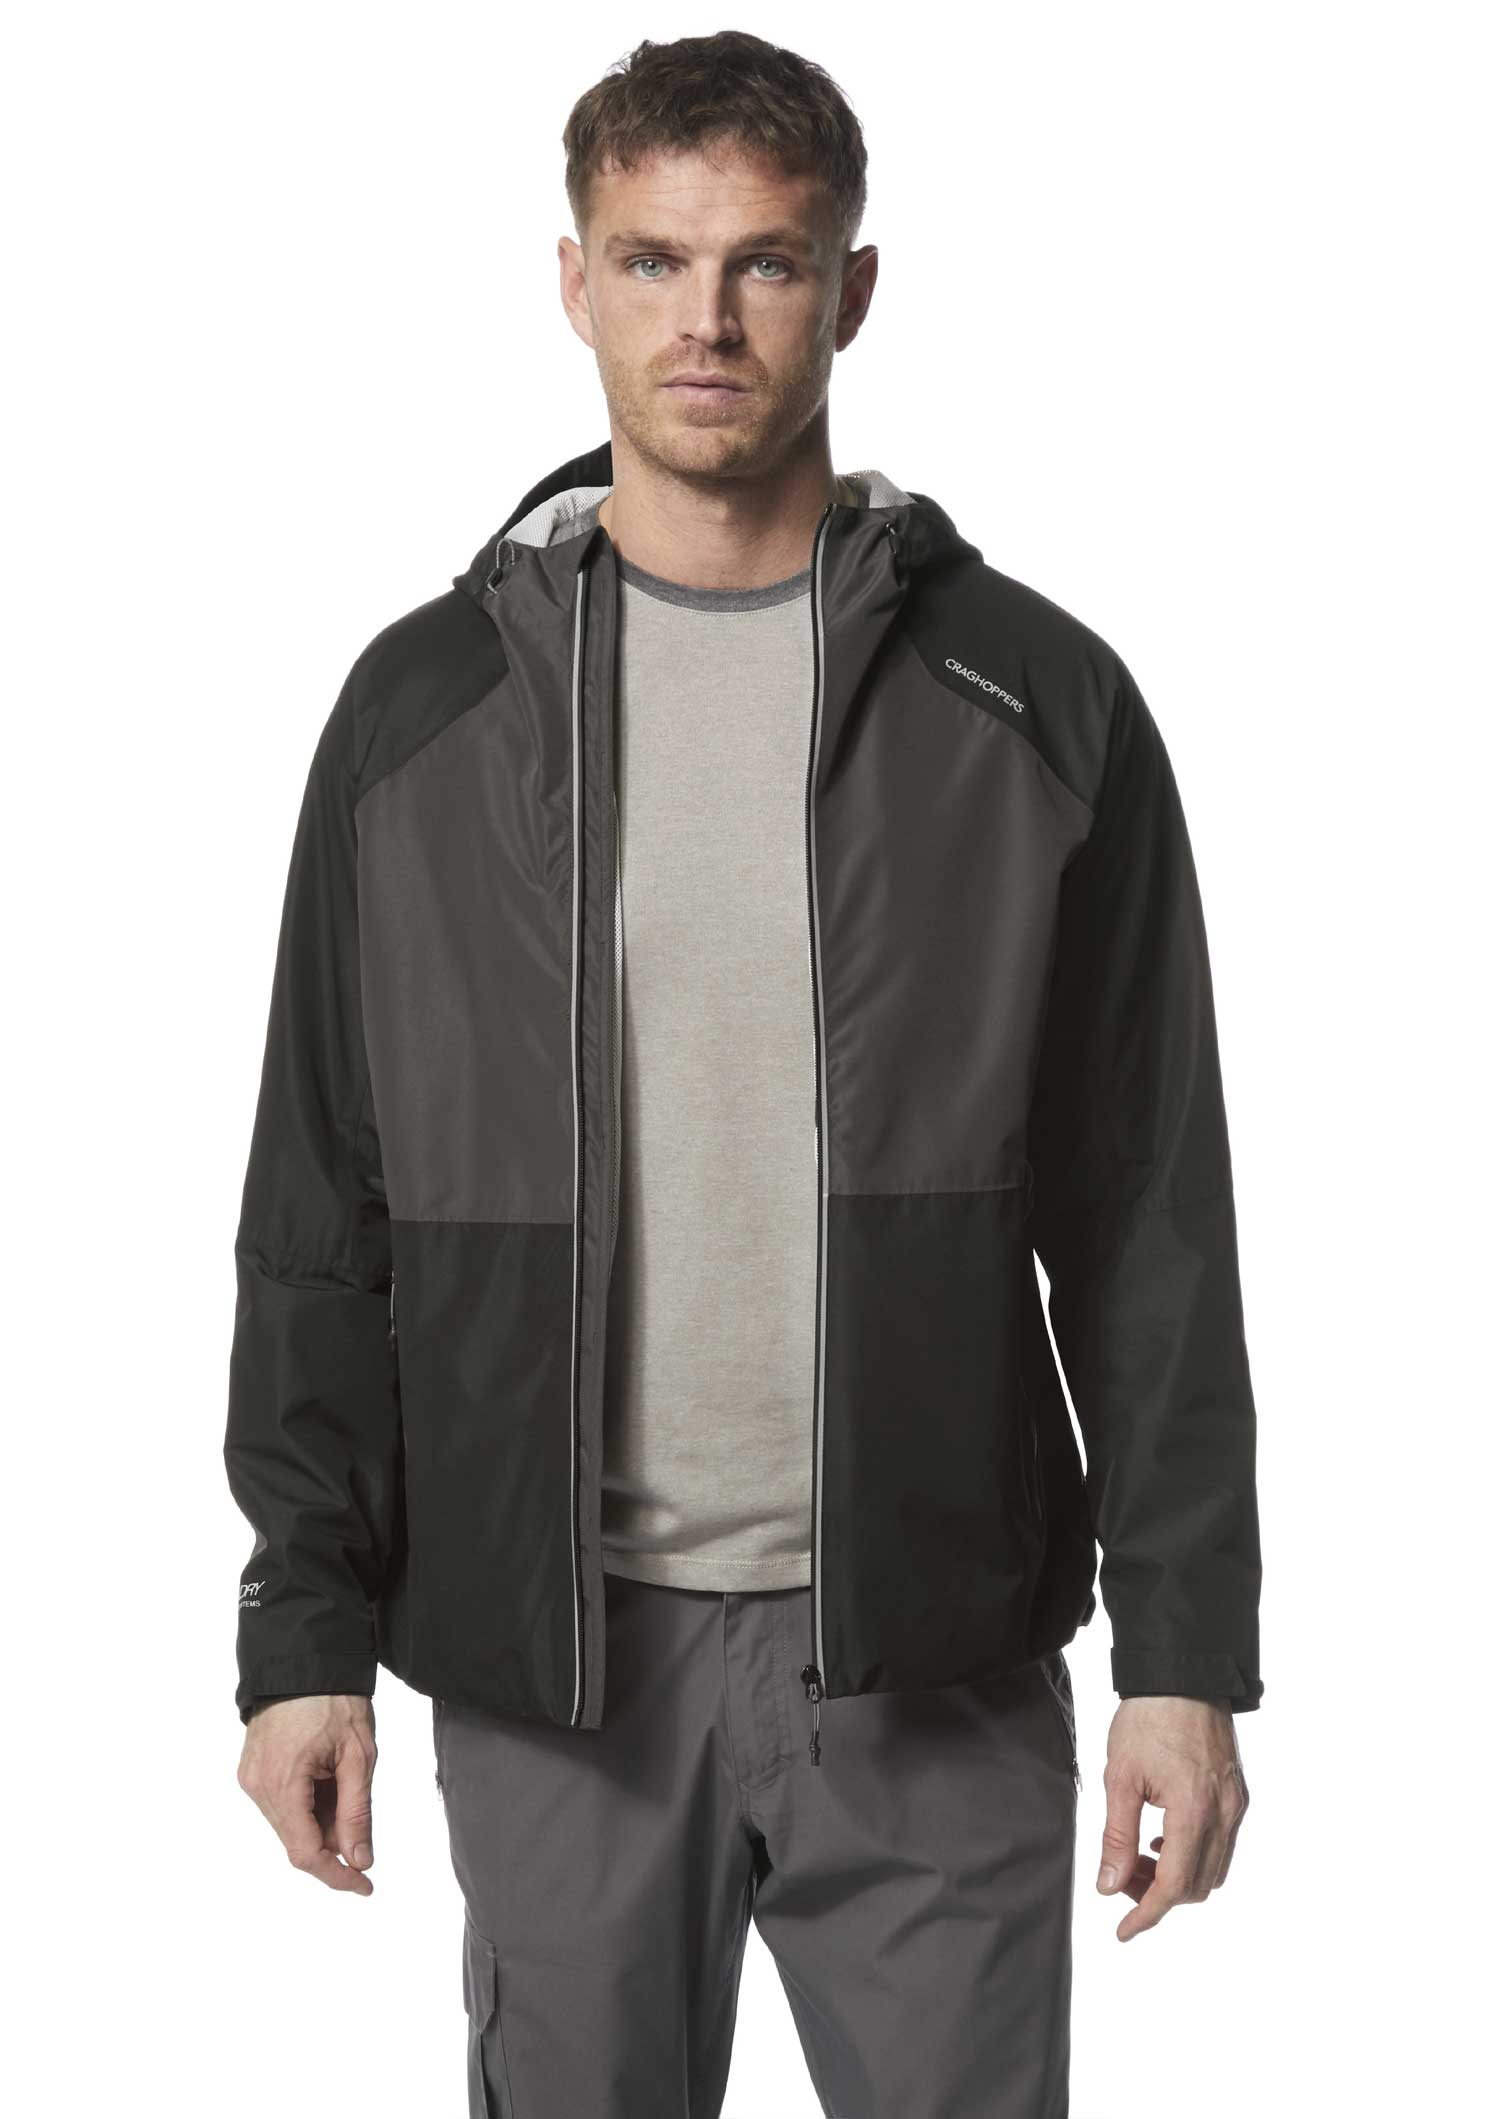 Black contemporary, two-tone, lightweight waterproof shell